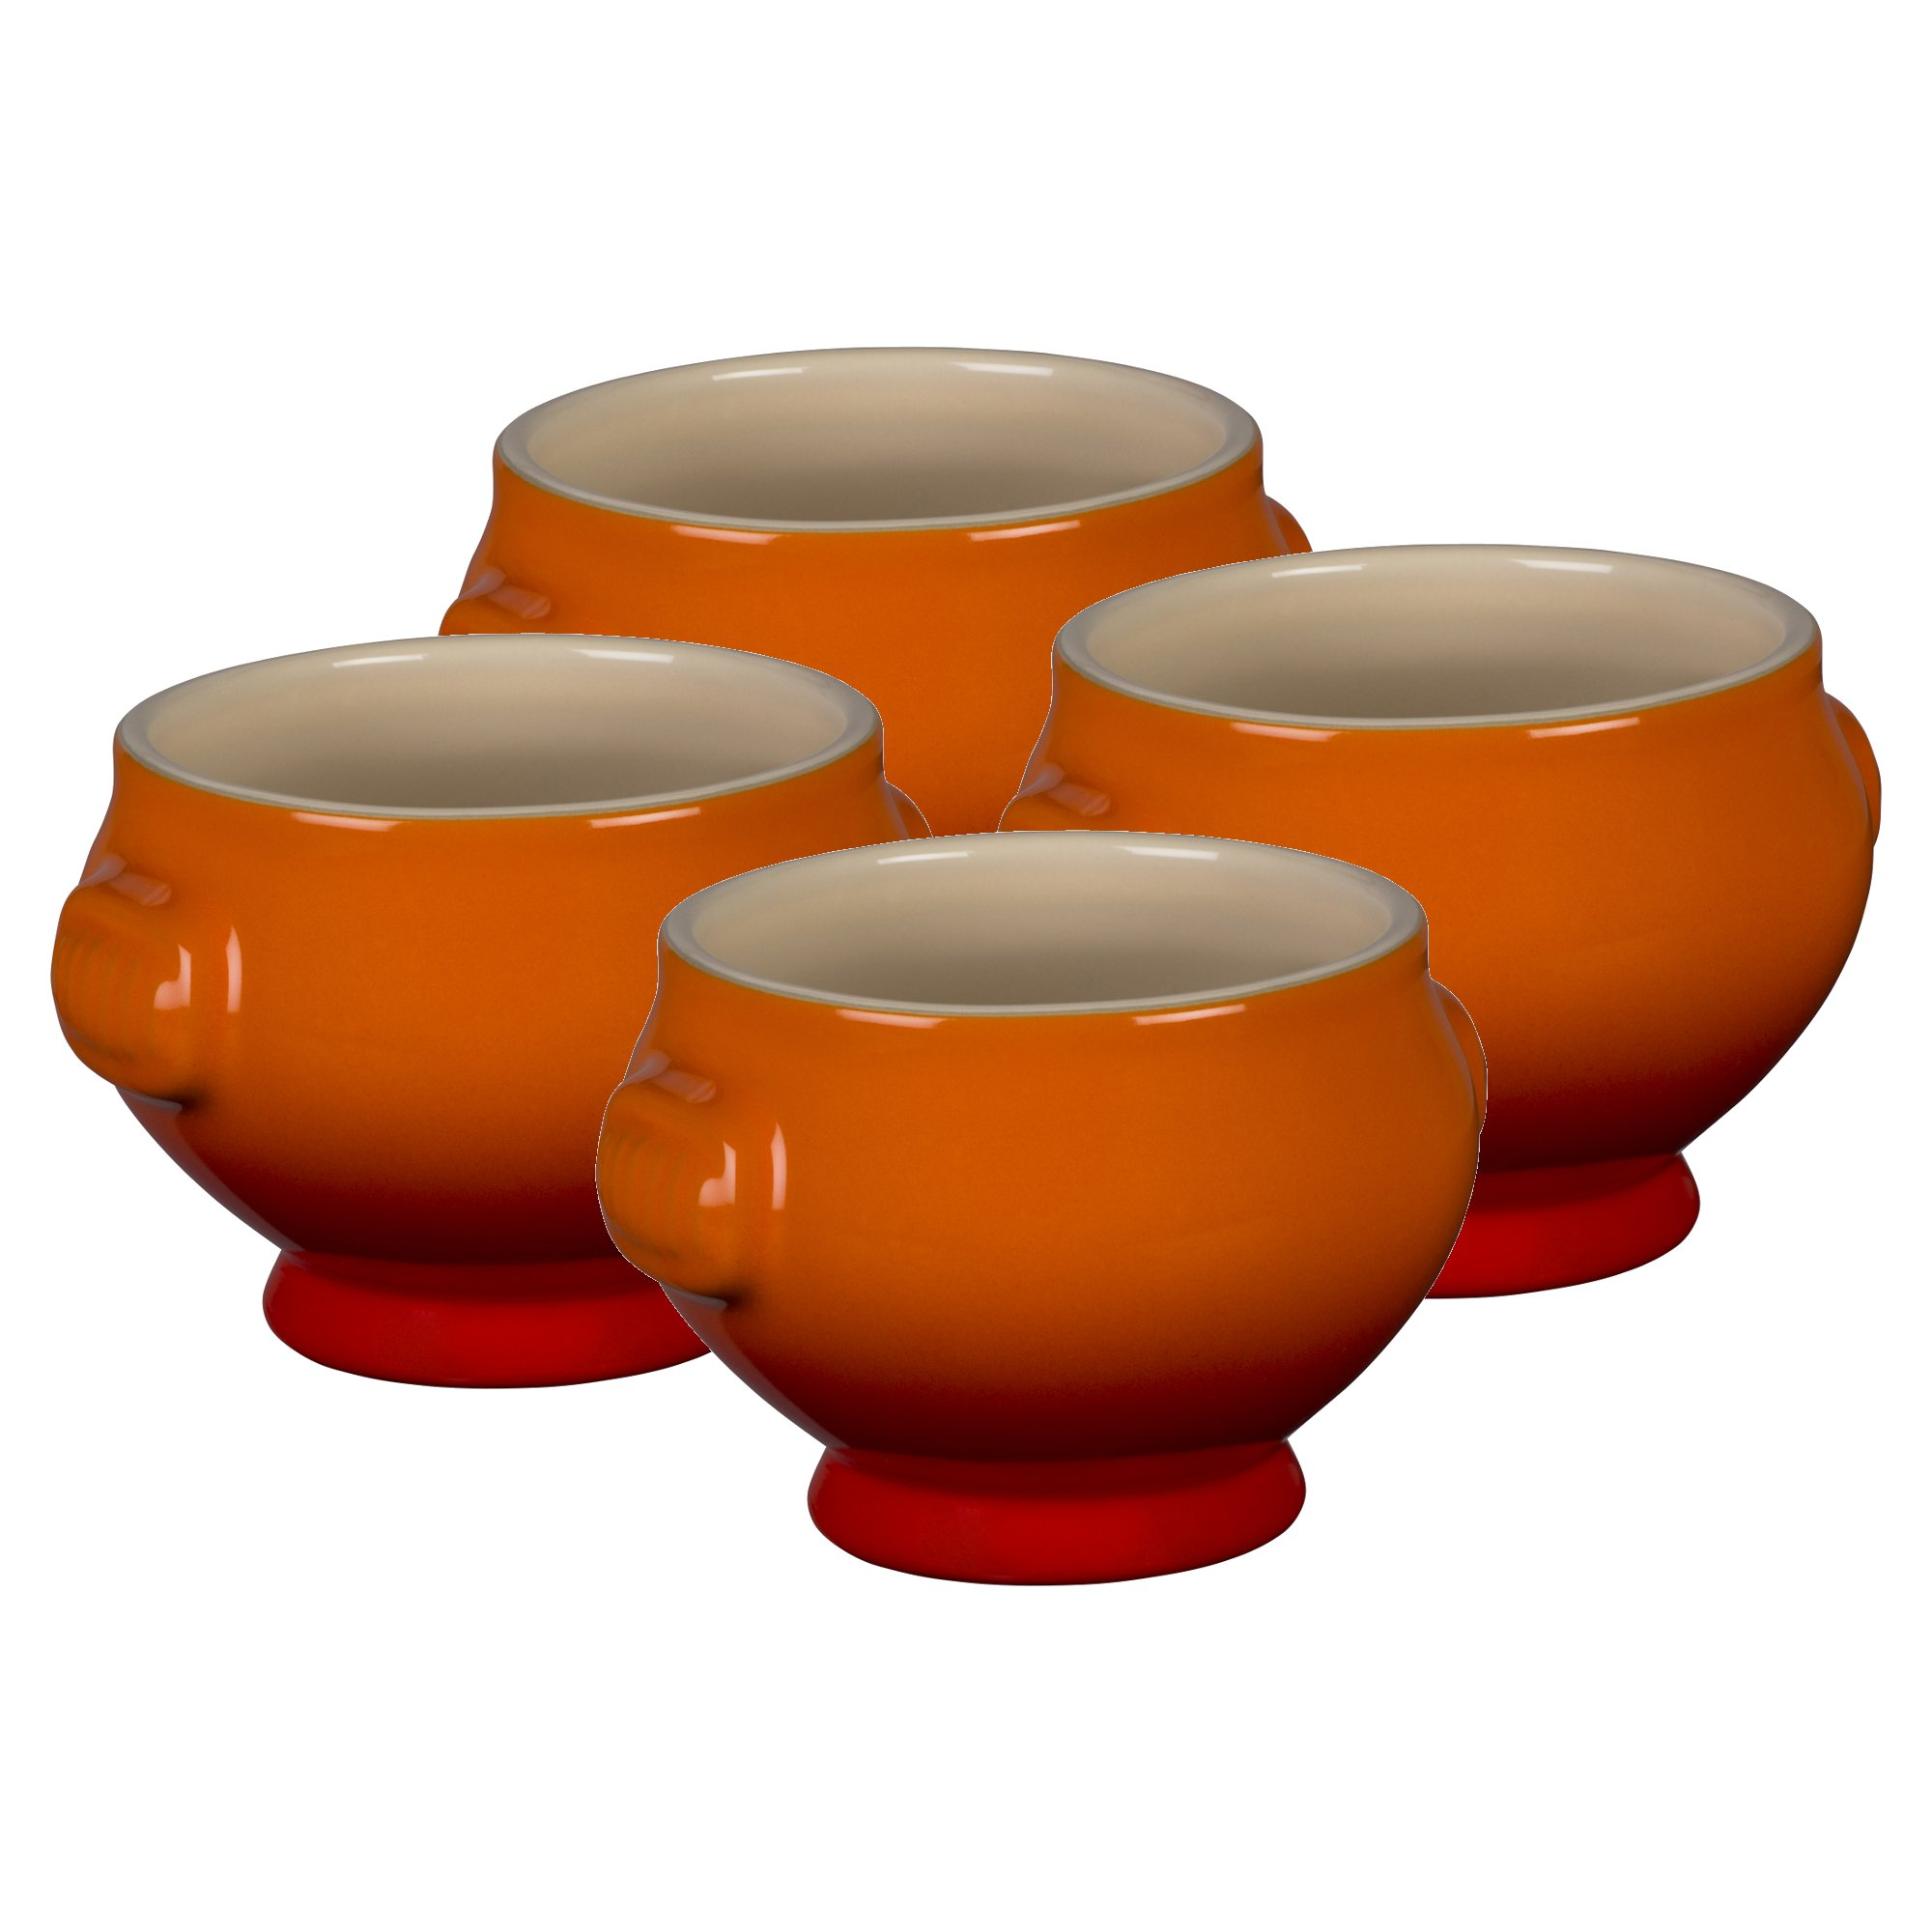 Le Creuset Heritage Flame Stoneware 20 Ounce Soup Bowl, Set of 4